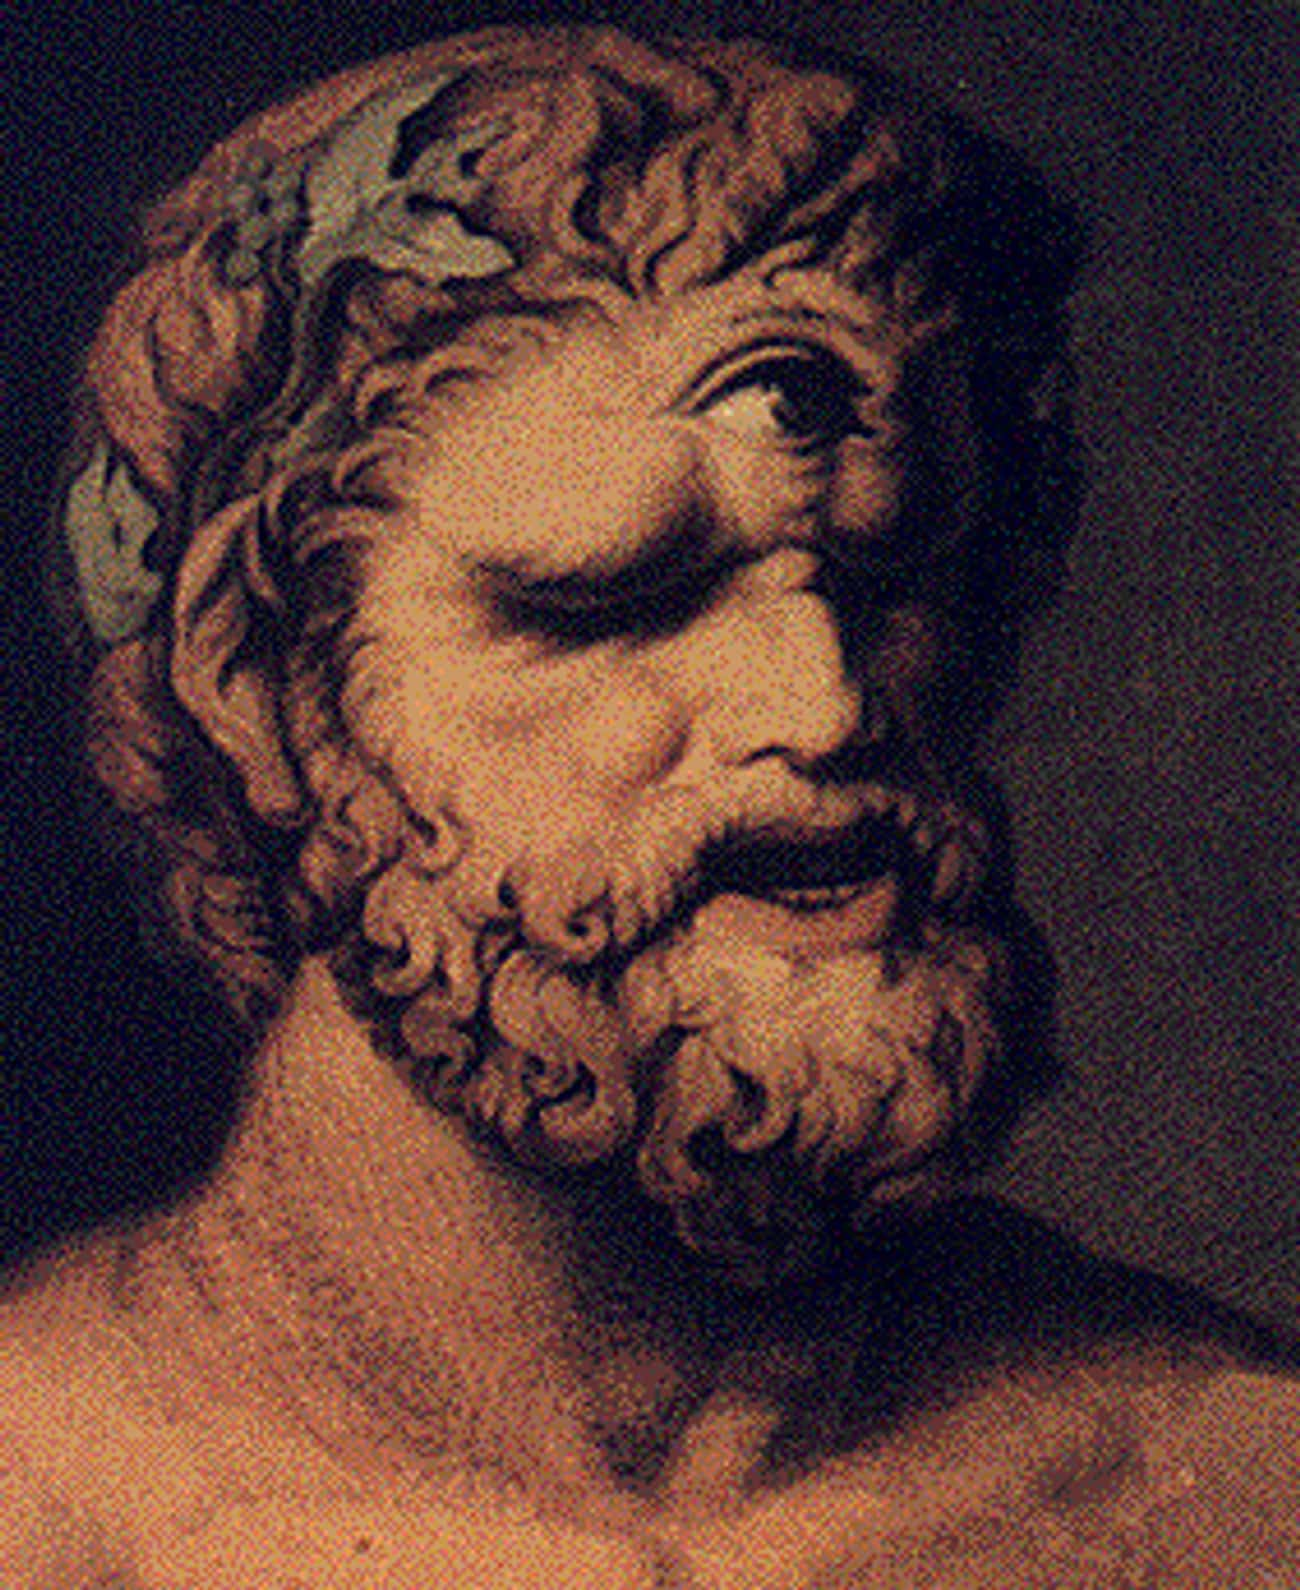 Another Myth States That The Cyclops Is The Son Of A God